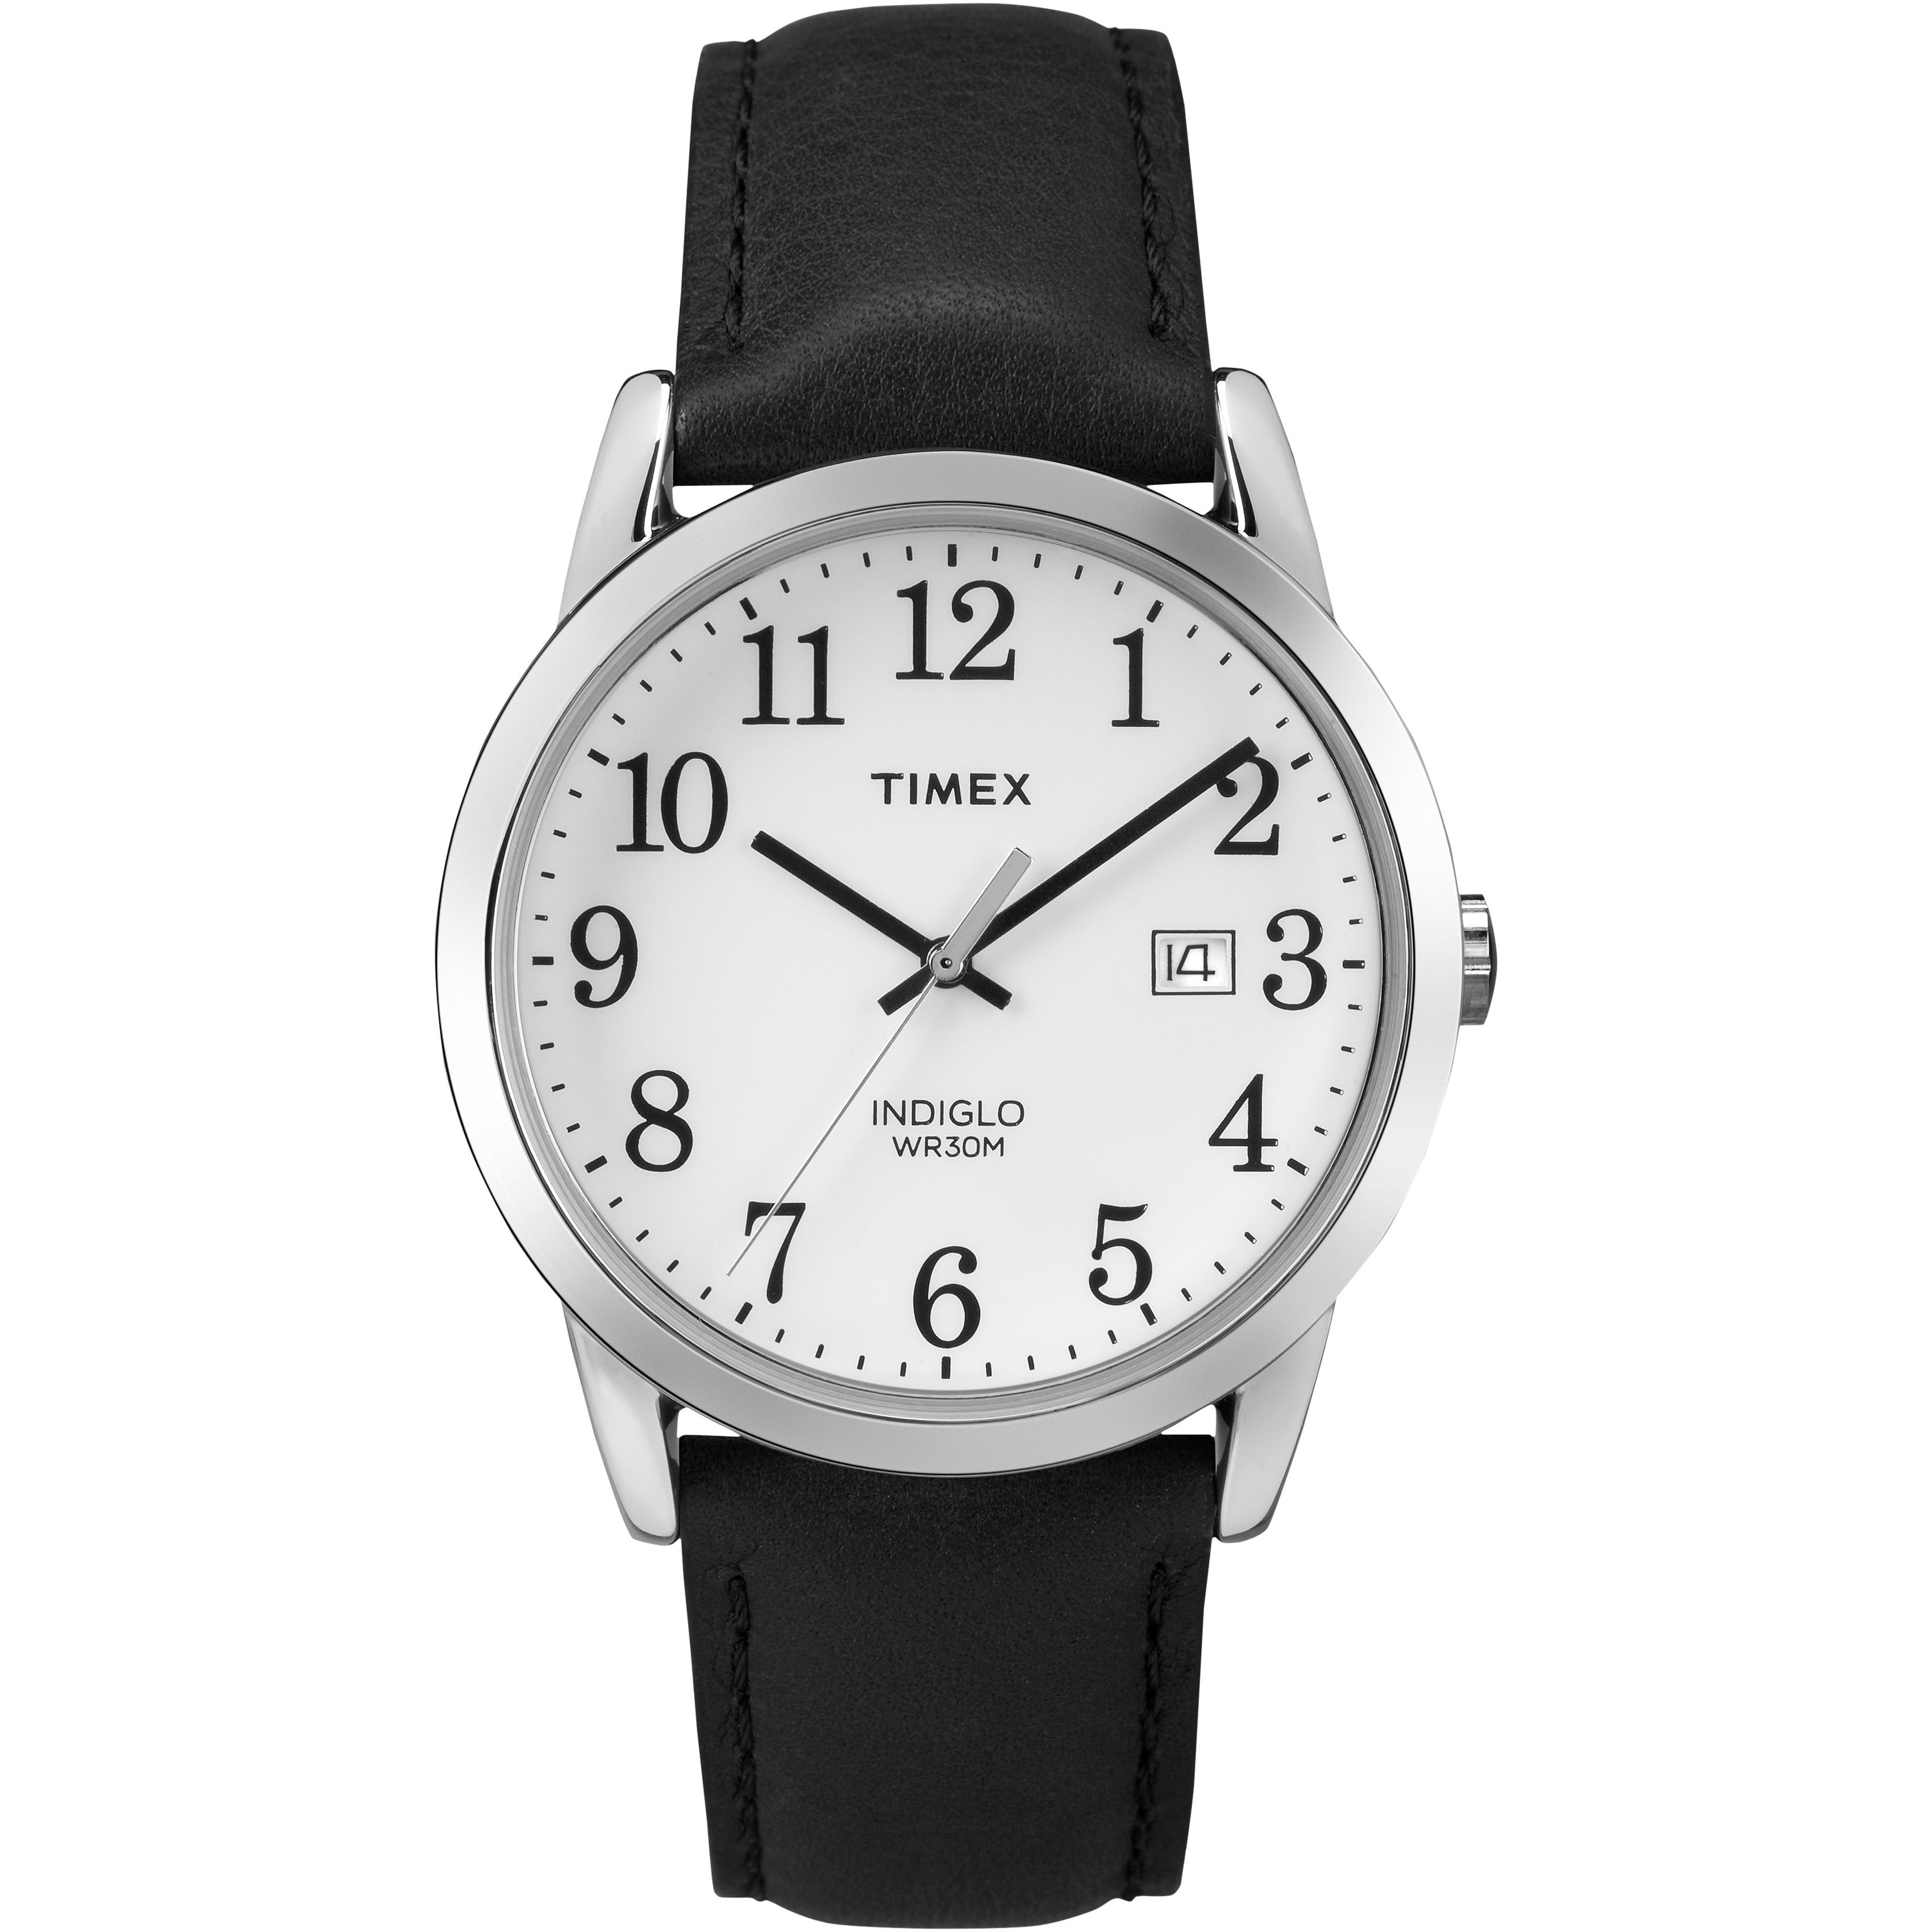 bc7088d953cc4 Shop Timex Men s Easy Reader Black Leather Strap Watch - Free Shipping On  Orders Over  45 - Overstock.com - 10273297